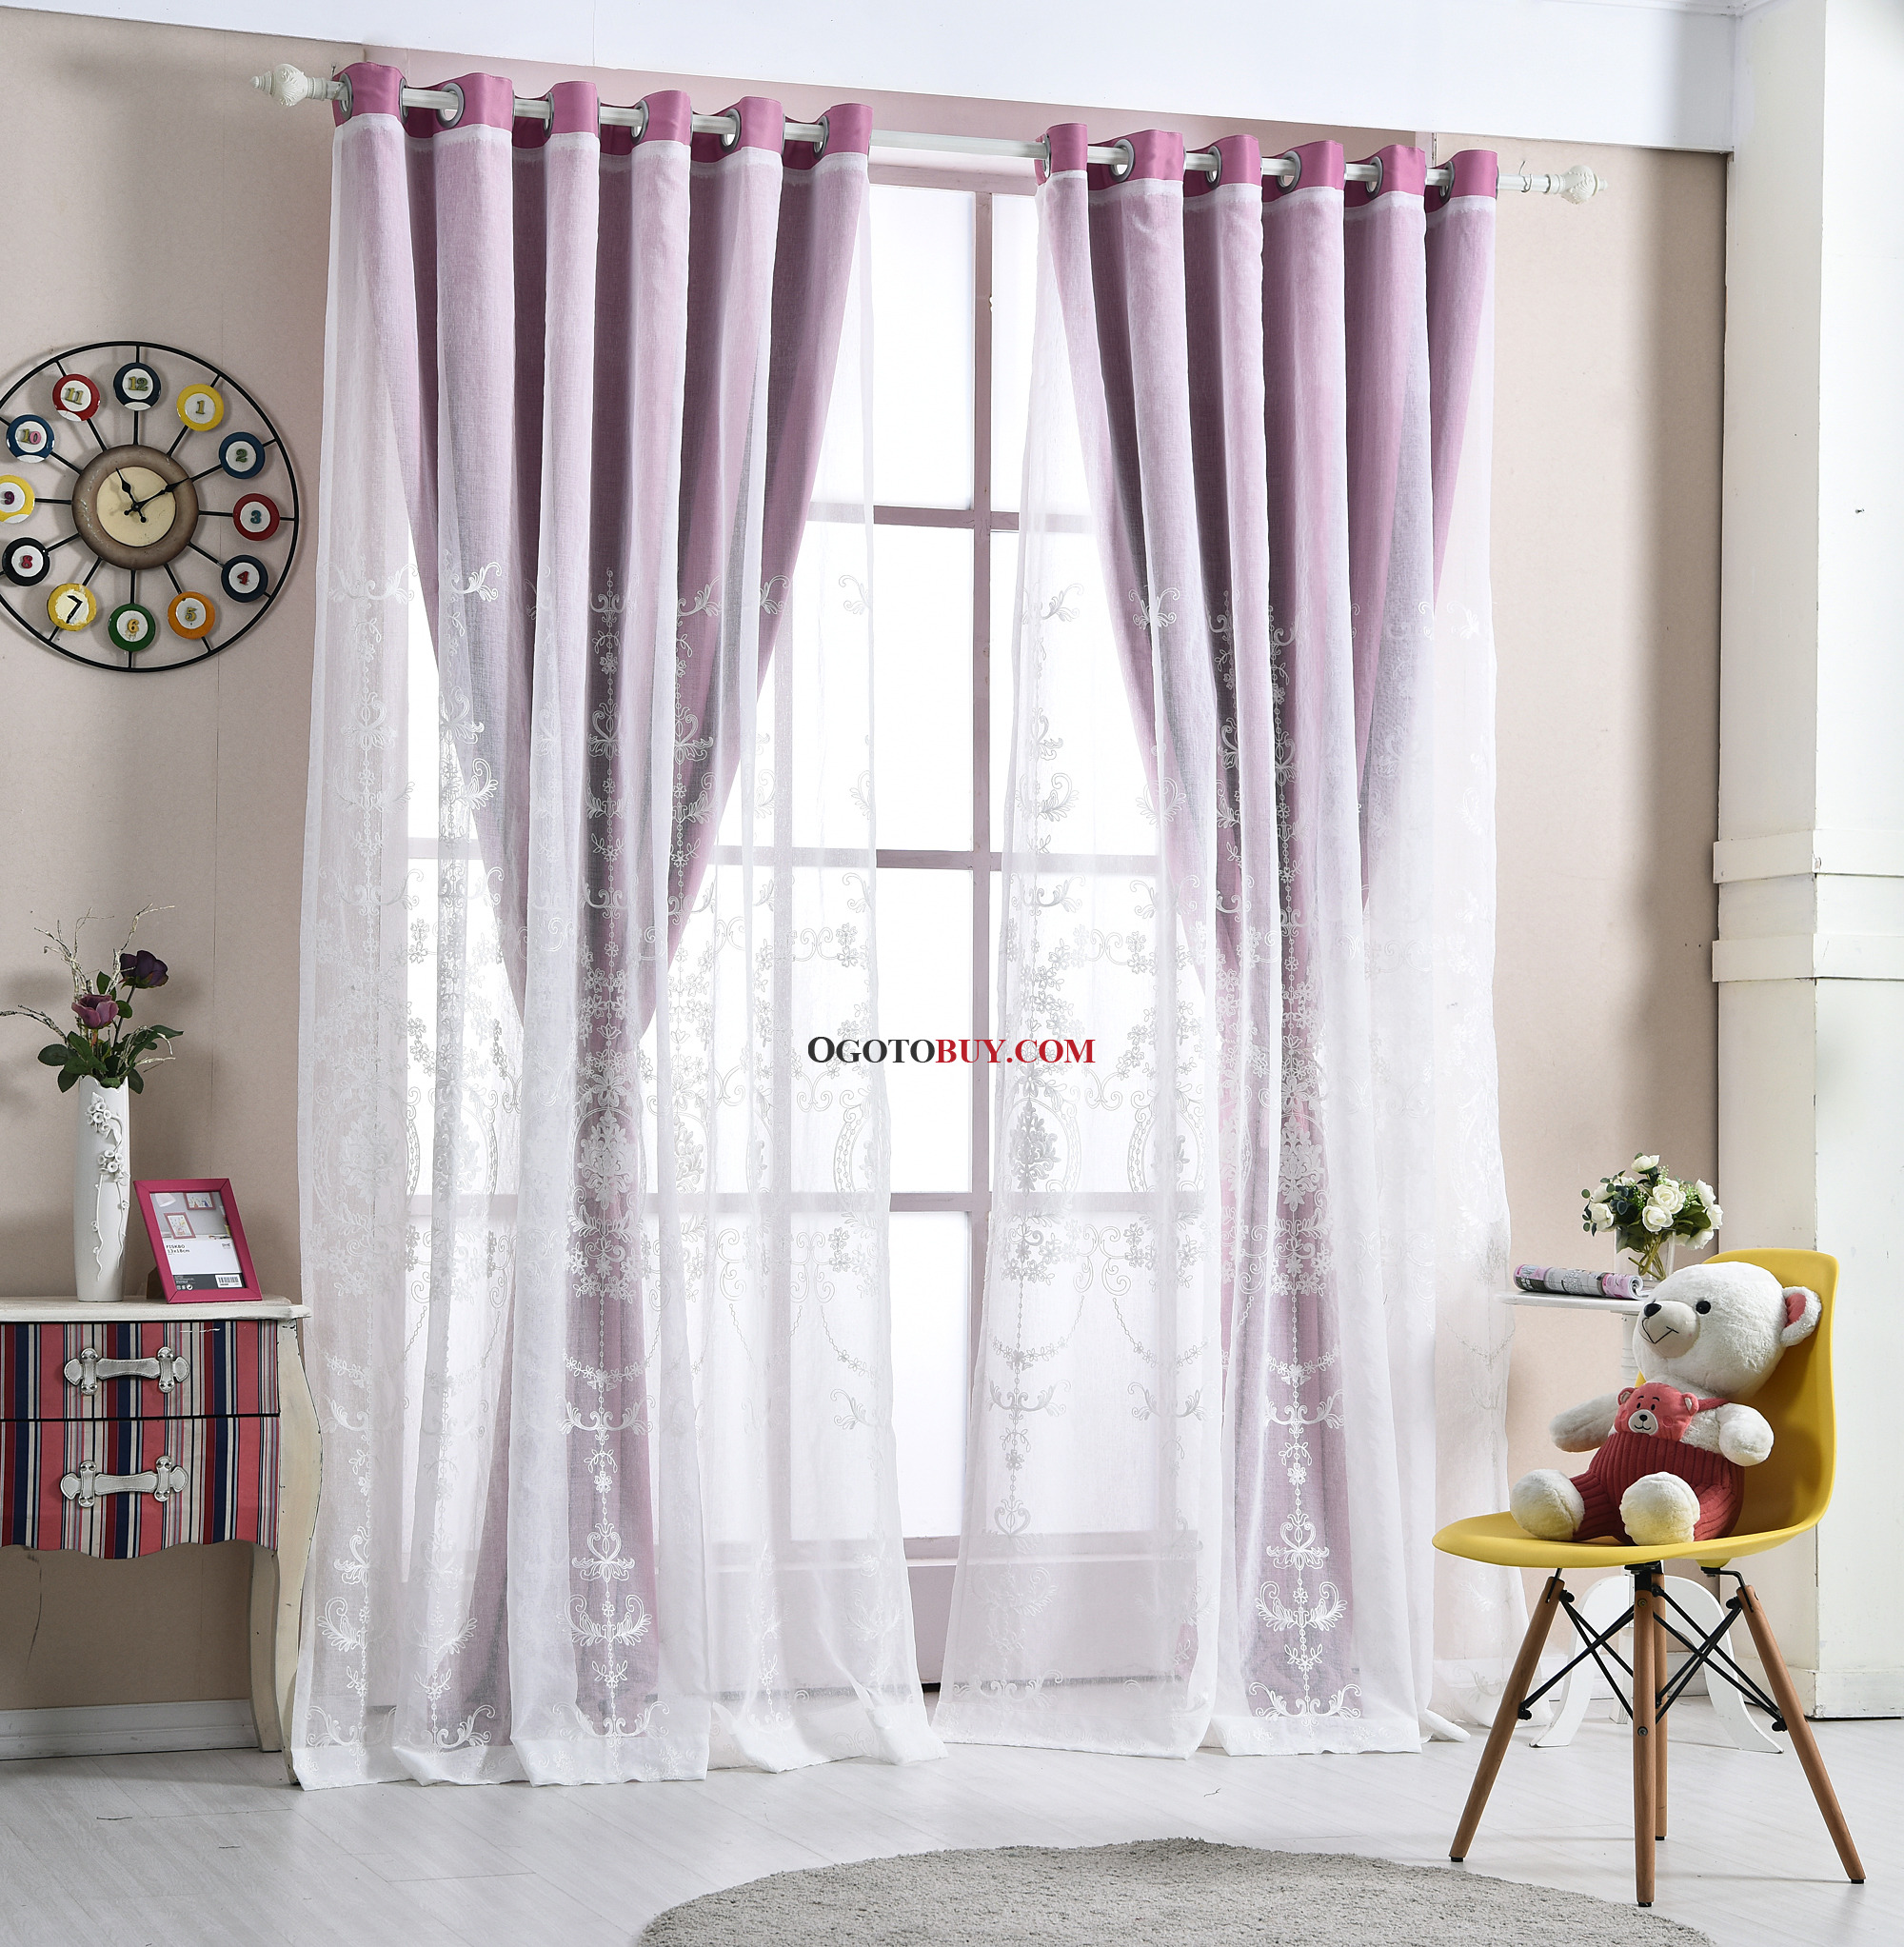 Bedroom Curtains Sale Purple Floral Print And Embroidery Elegant Polyester Curtains For